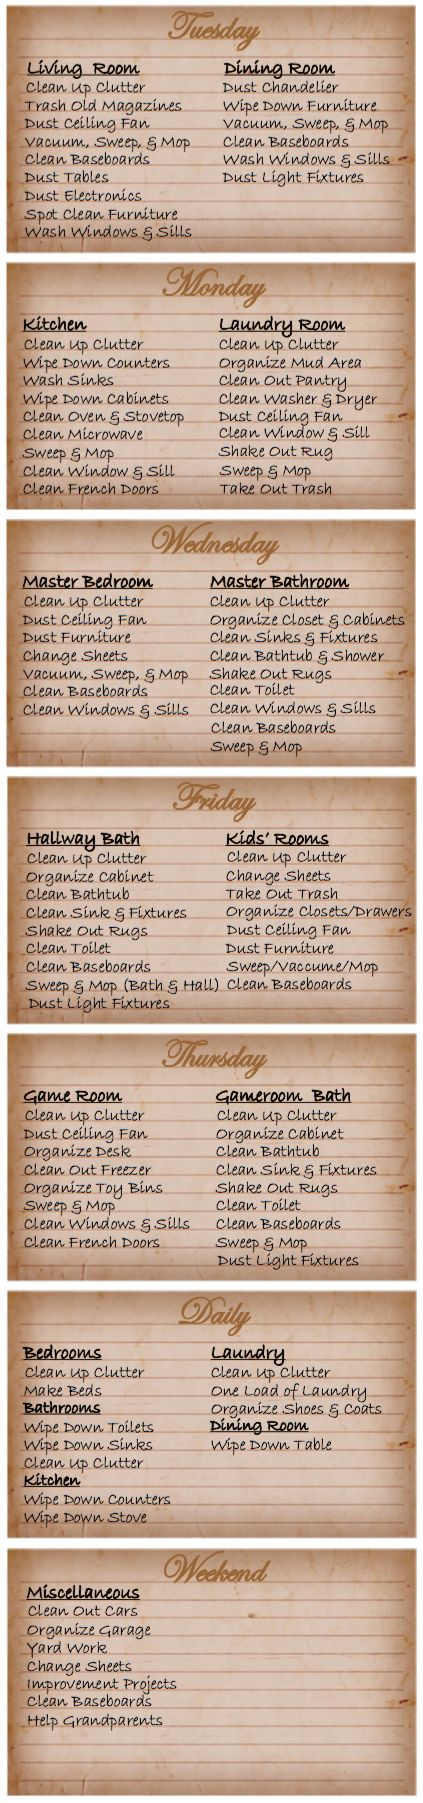 Get your house cleaning schedule organized with this handy FREE printable planner from Blessed Messes